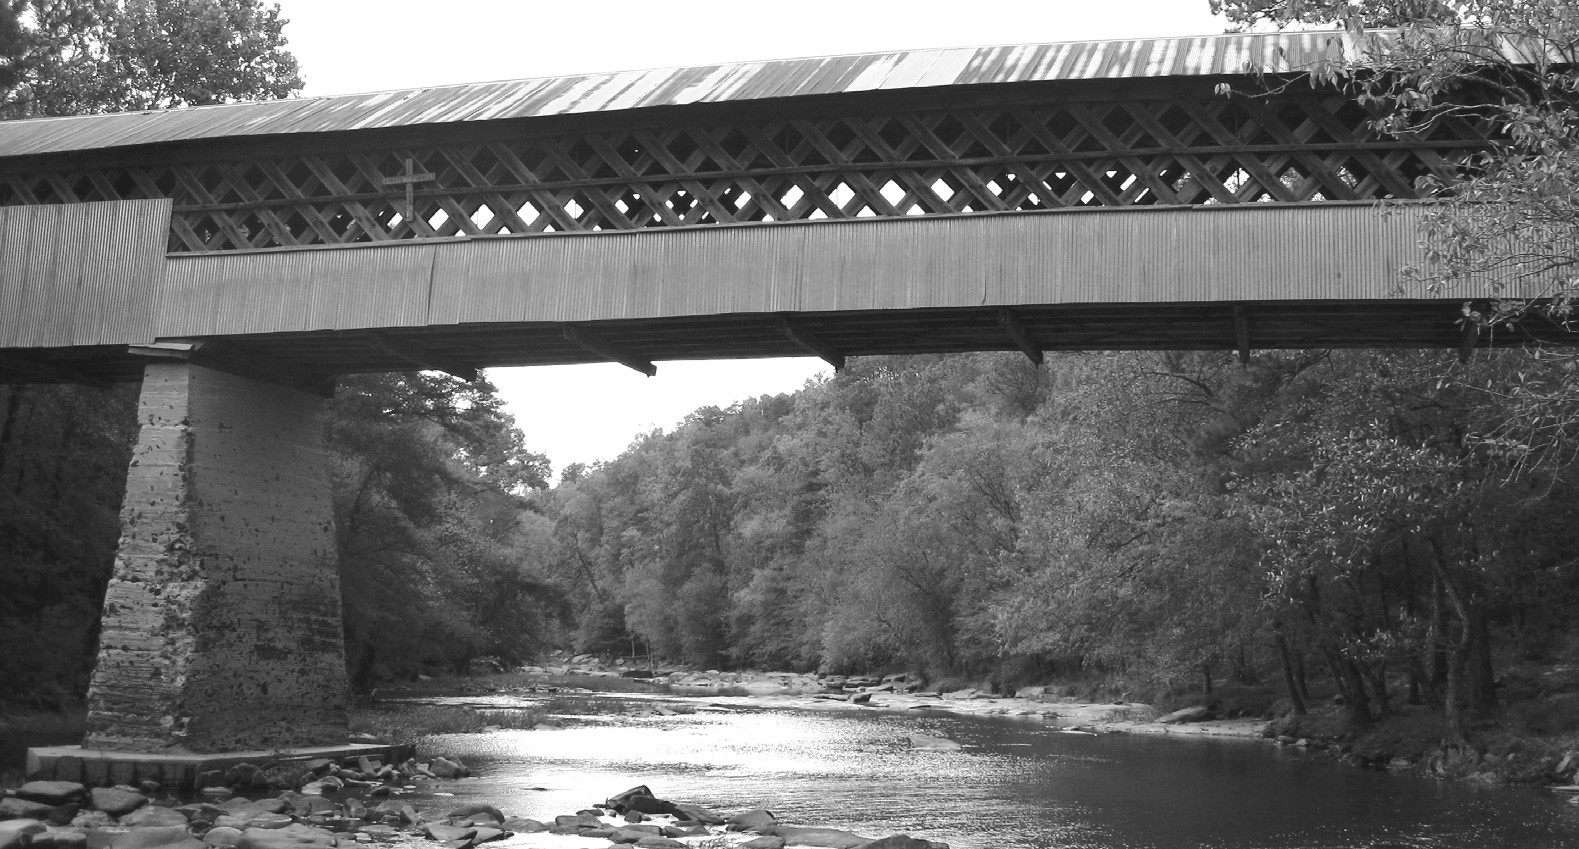 Bids for repair work on Blount County's three remaining covered bridges were opened in September.